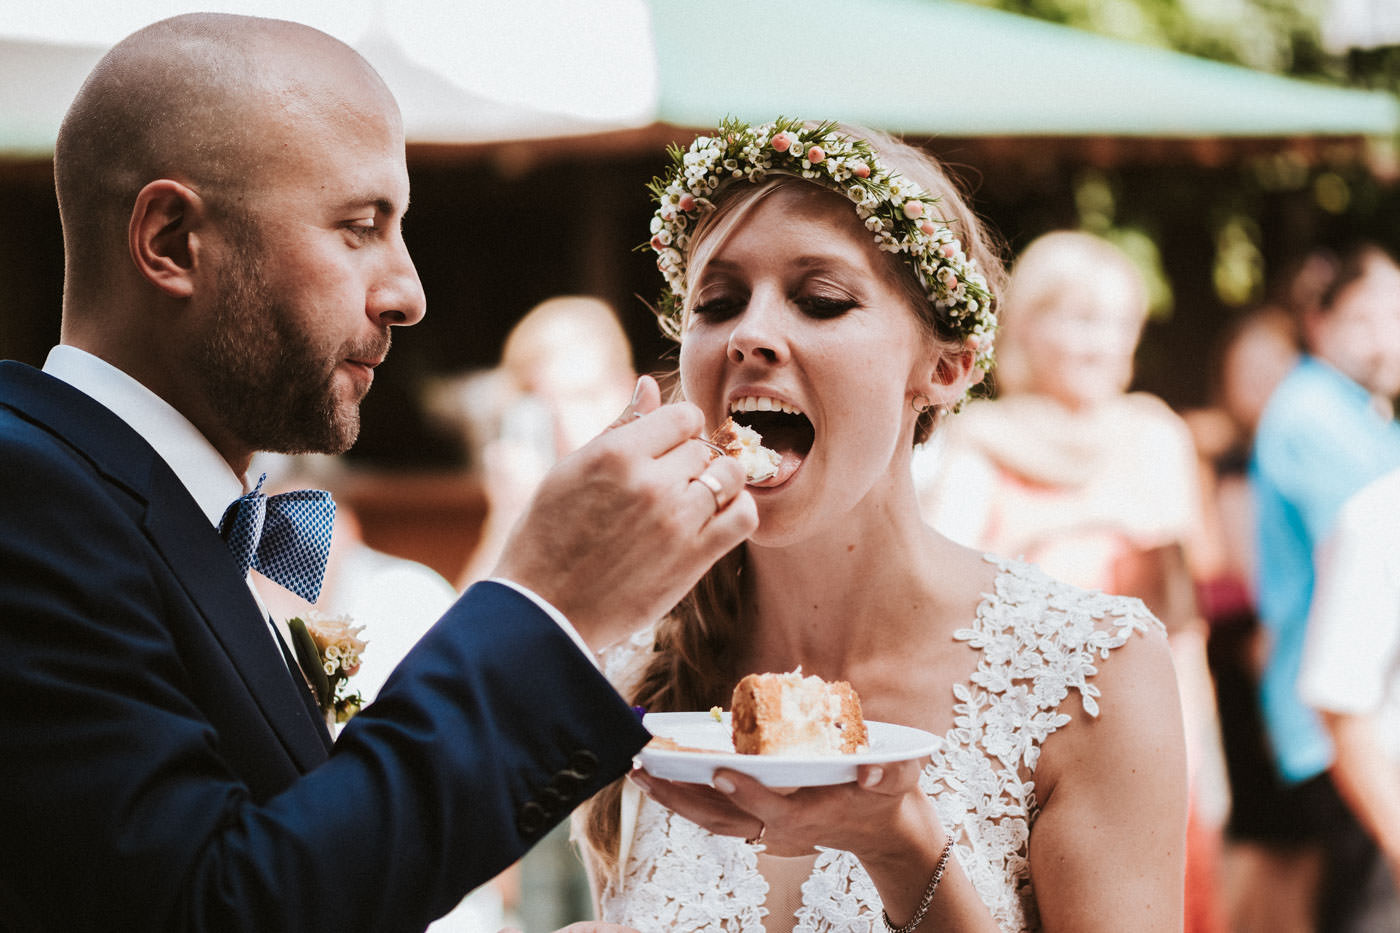 Groom feeds bride with wedding cake